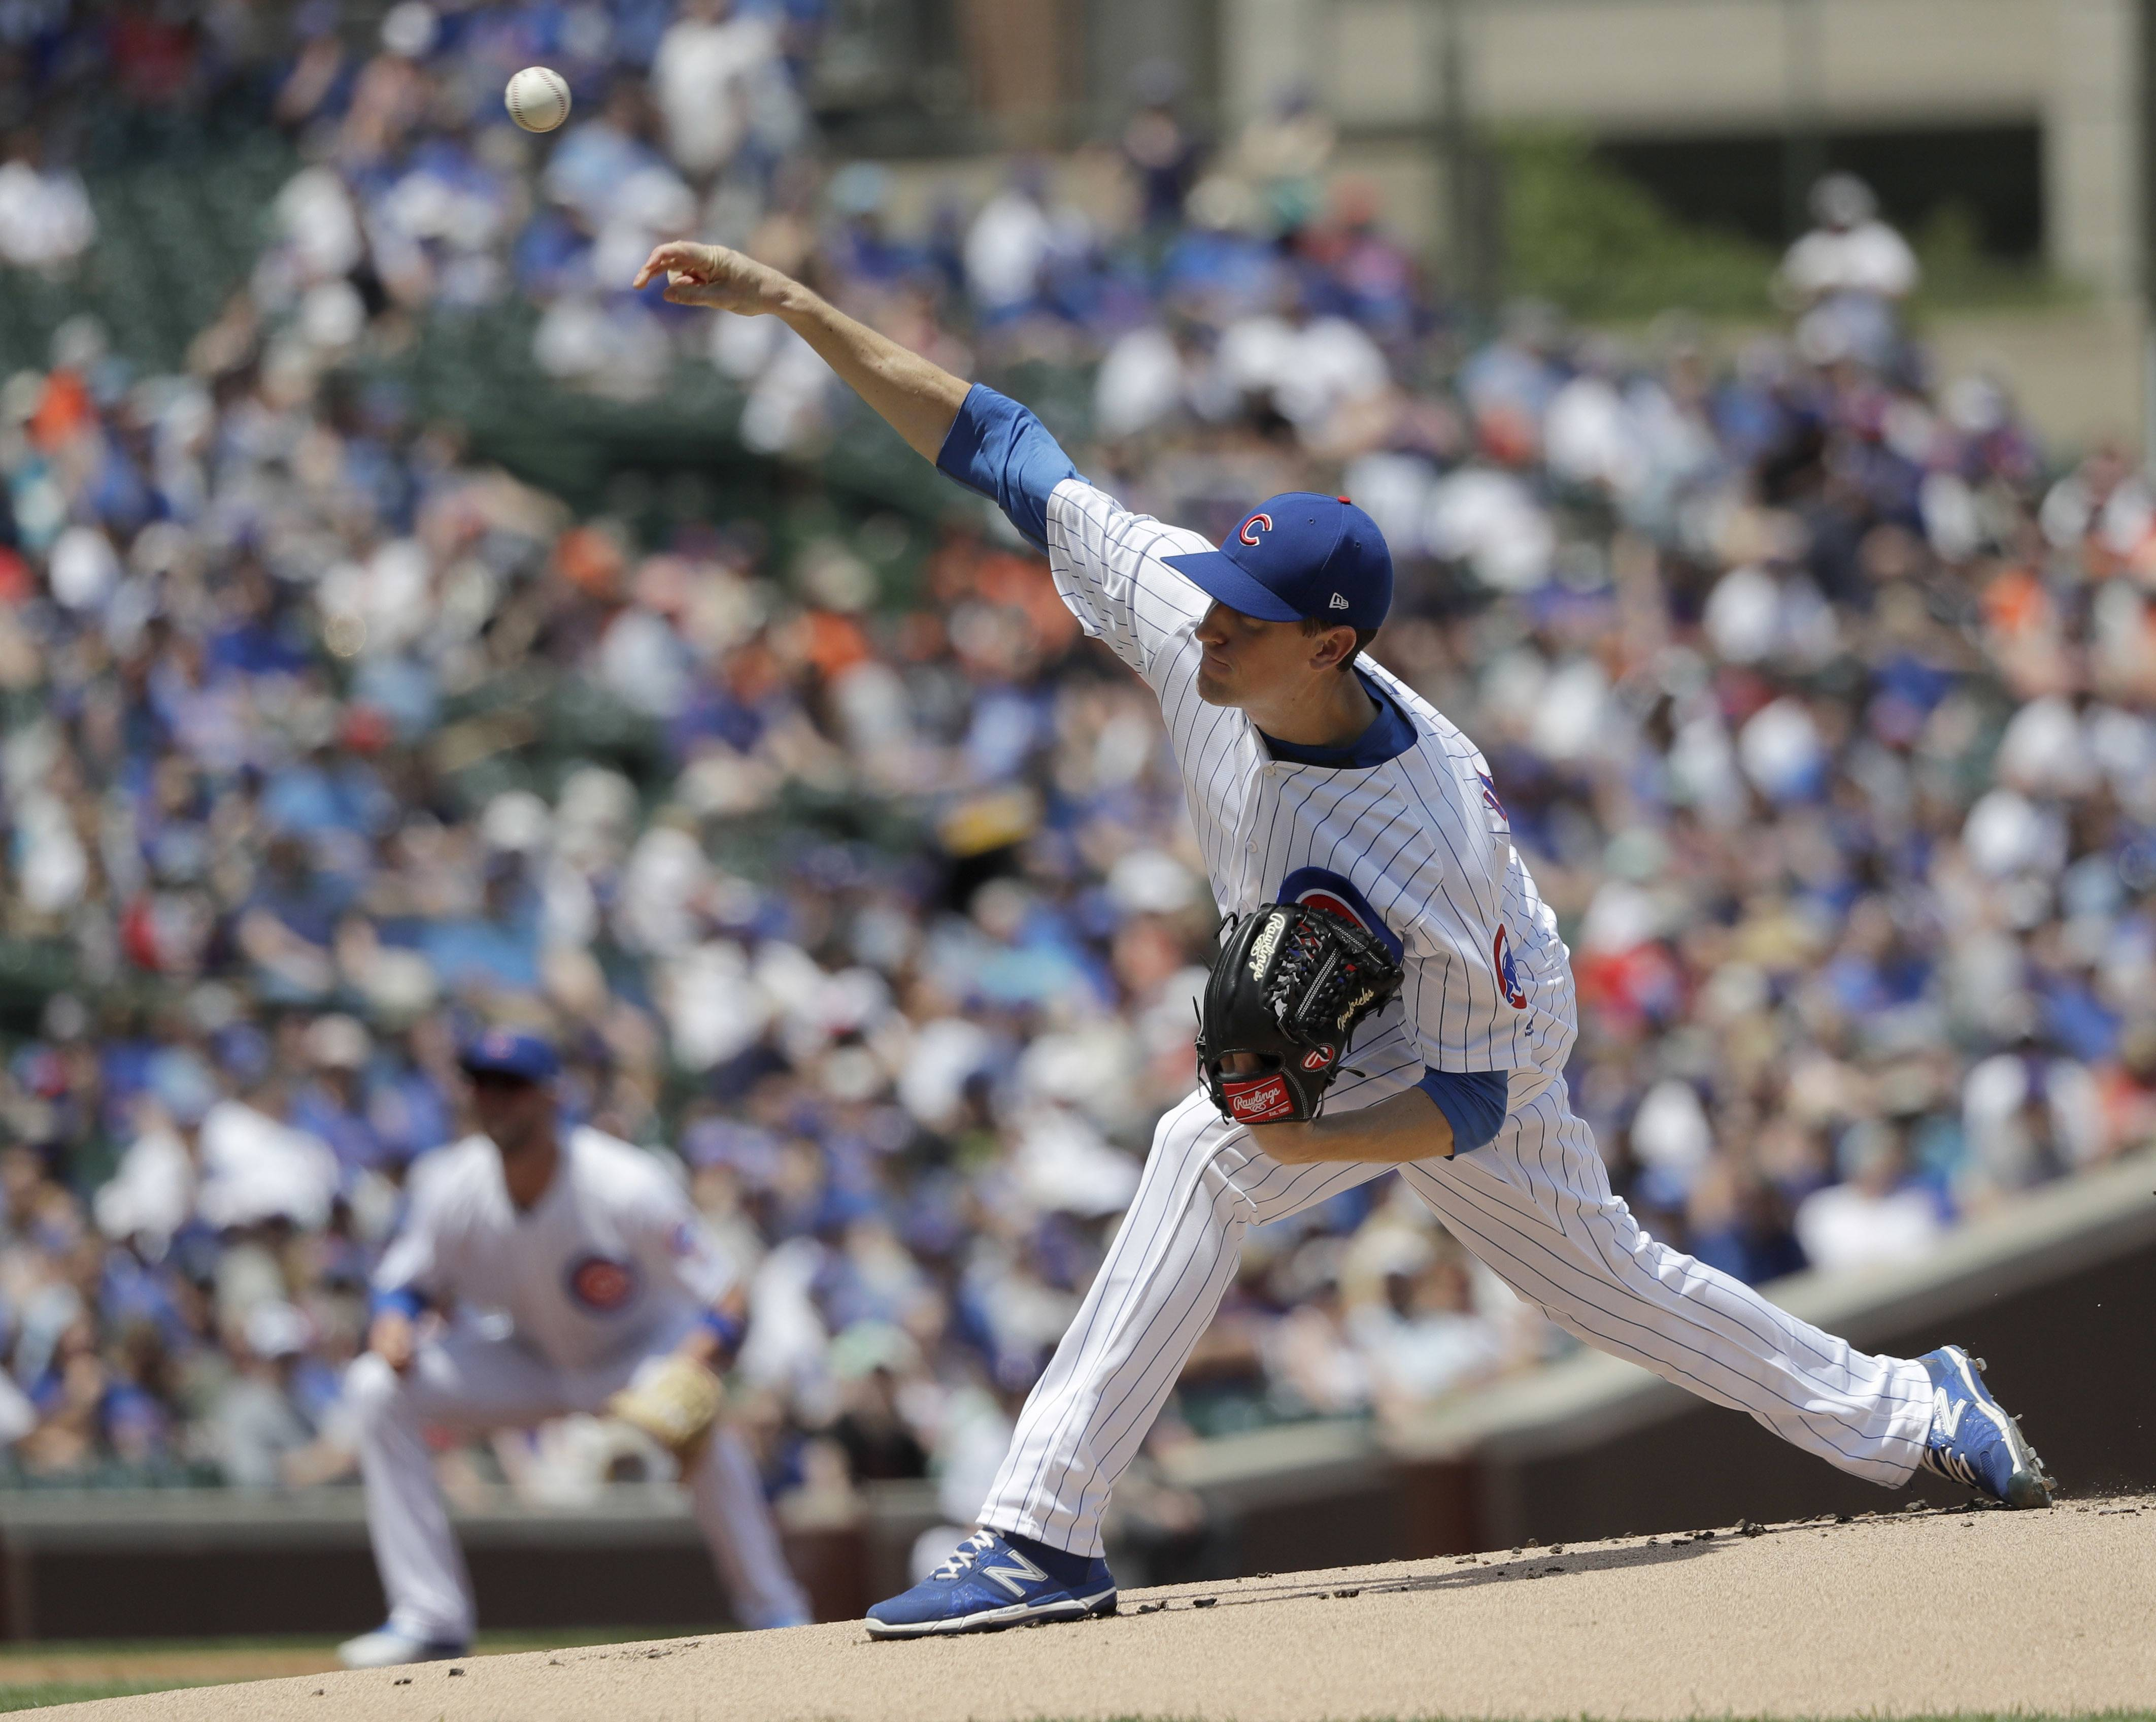 Chicago Cubs starting pitcher Kyle Hendricks delivers during the first inning of a baseball game after the game Friday, May 25, 2018, in Chicago. (AP Photo/Charles Rex Arbogast)